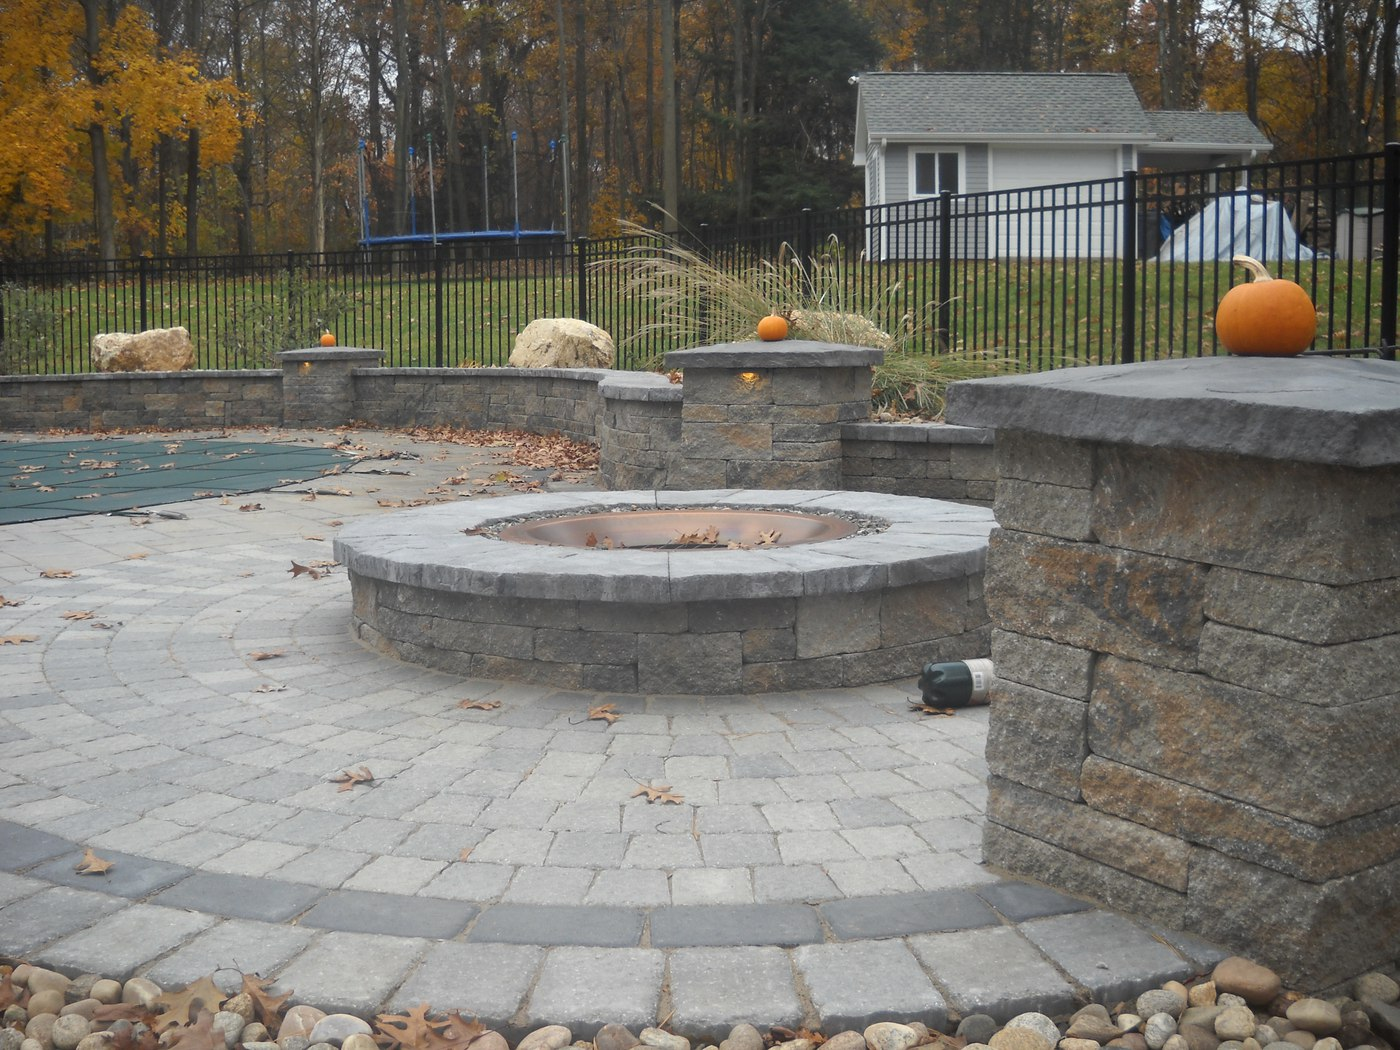 5 Things You Should Know BEFORE You Receive a Paver Patio ... on Patio Paver Design Ideas id=45000